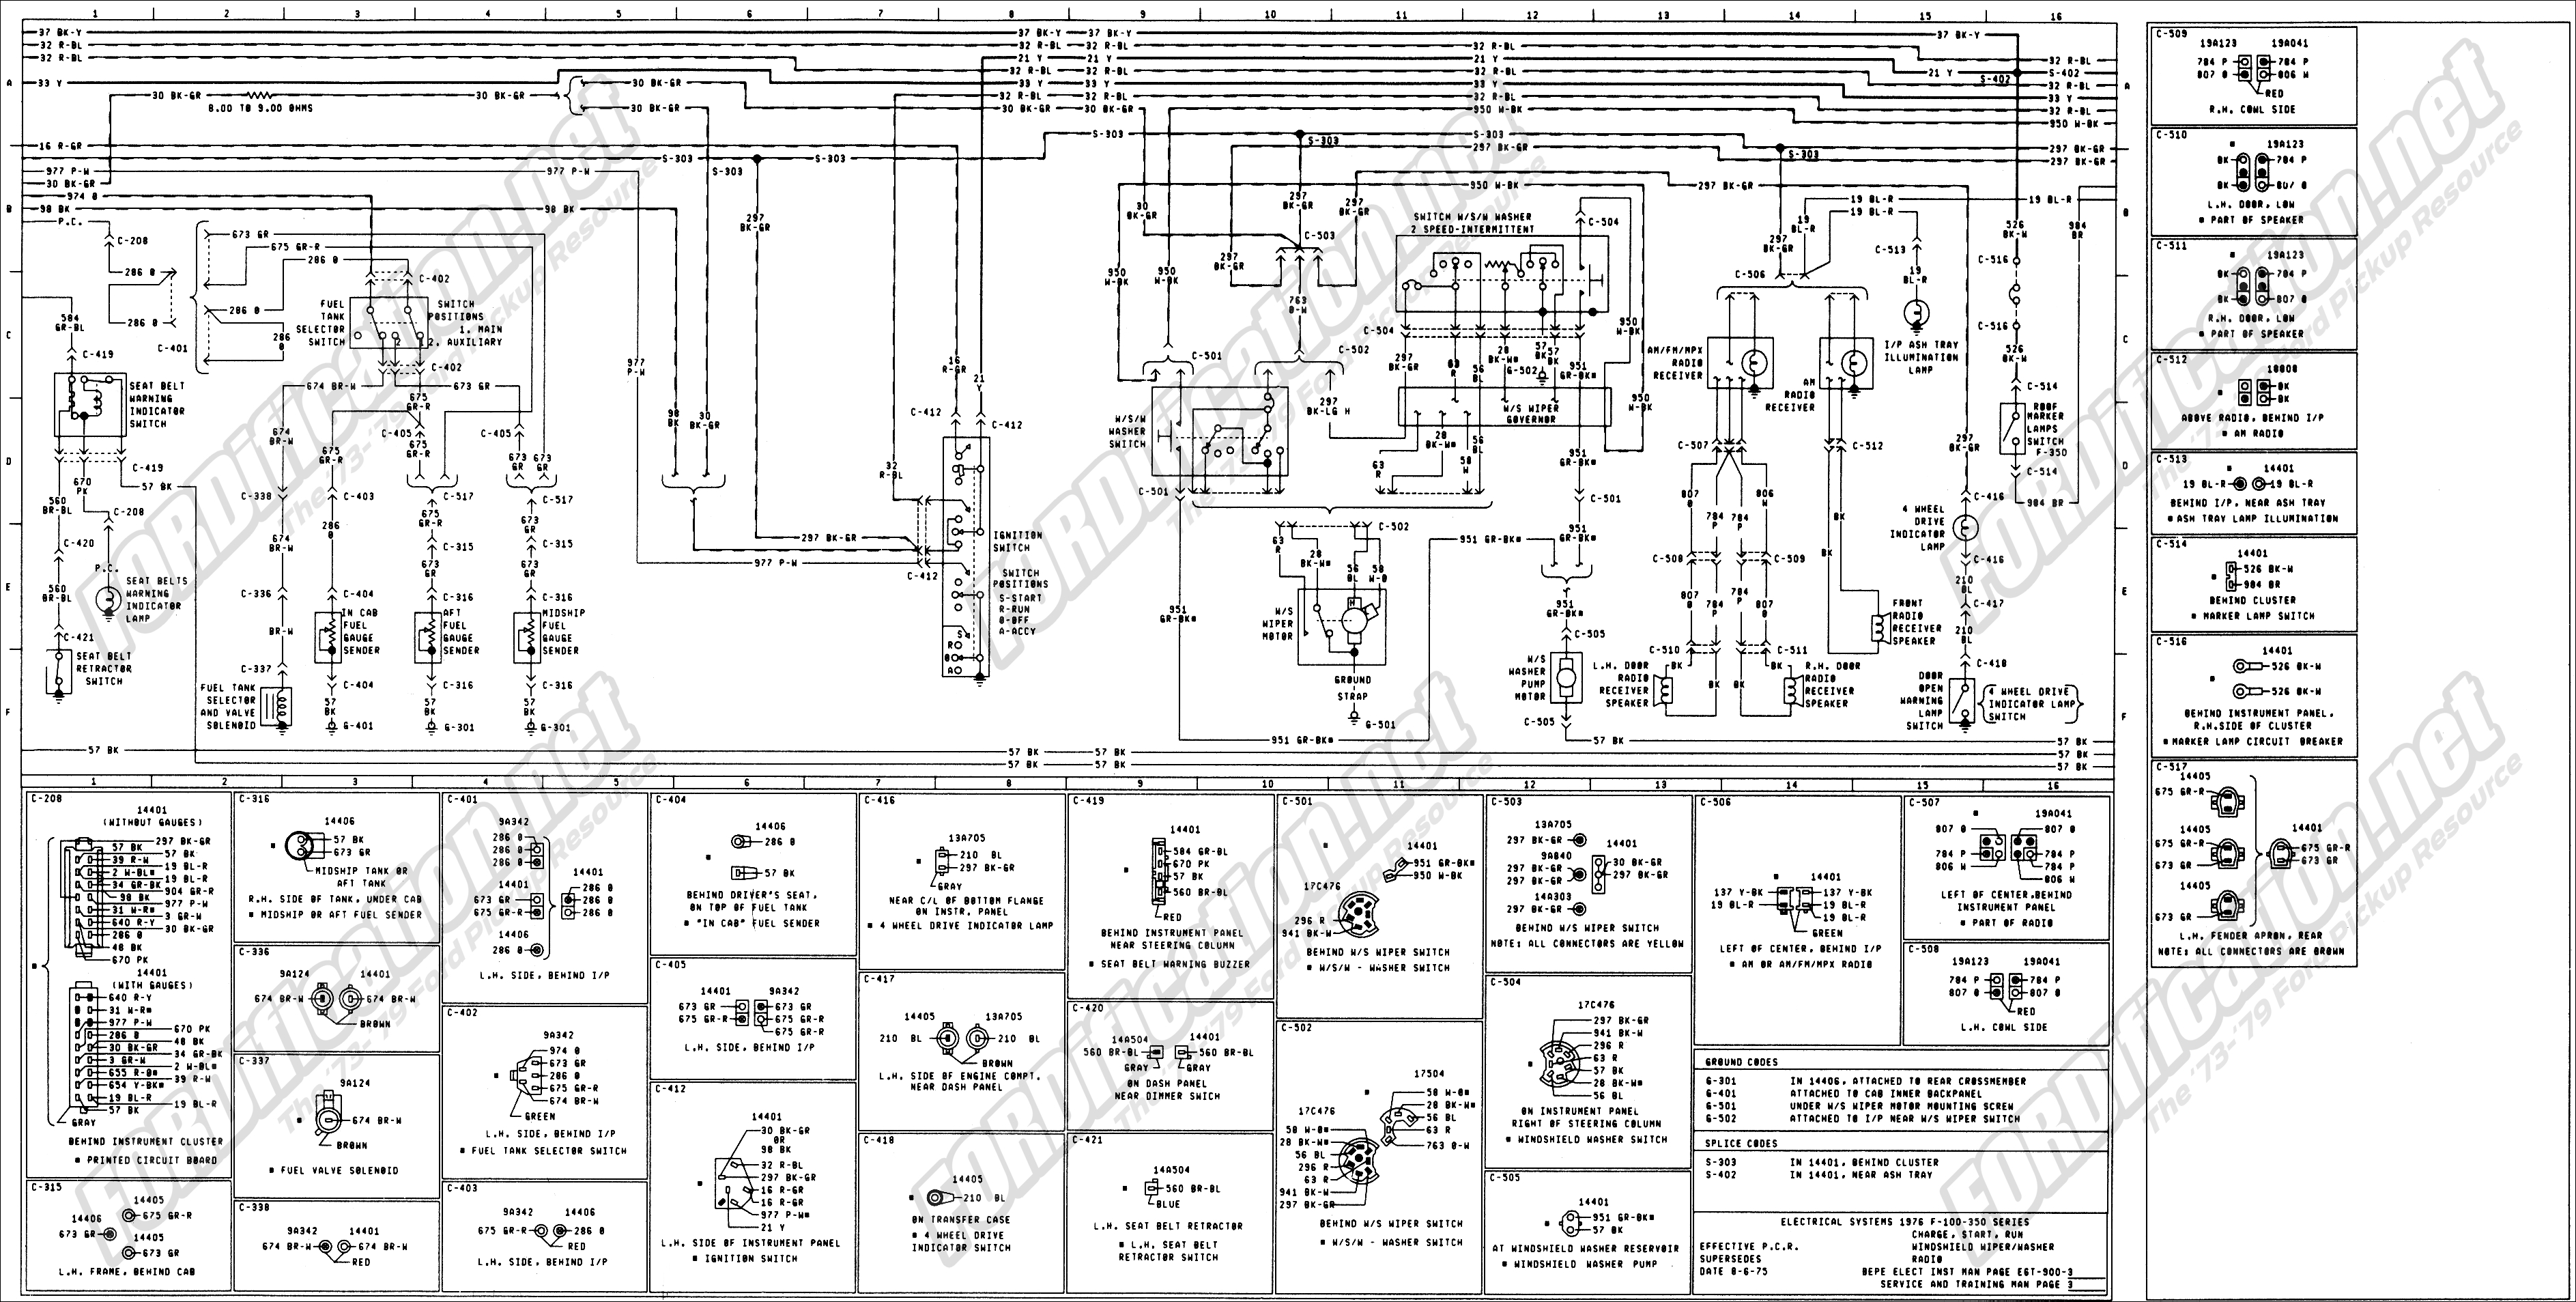 02 Ford F 250 Wiring Diagrams | Wiring Diagram - 2002 Ford F250 Trailer Wiring Diagram